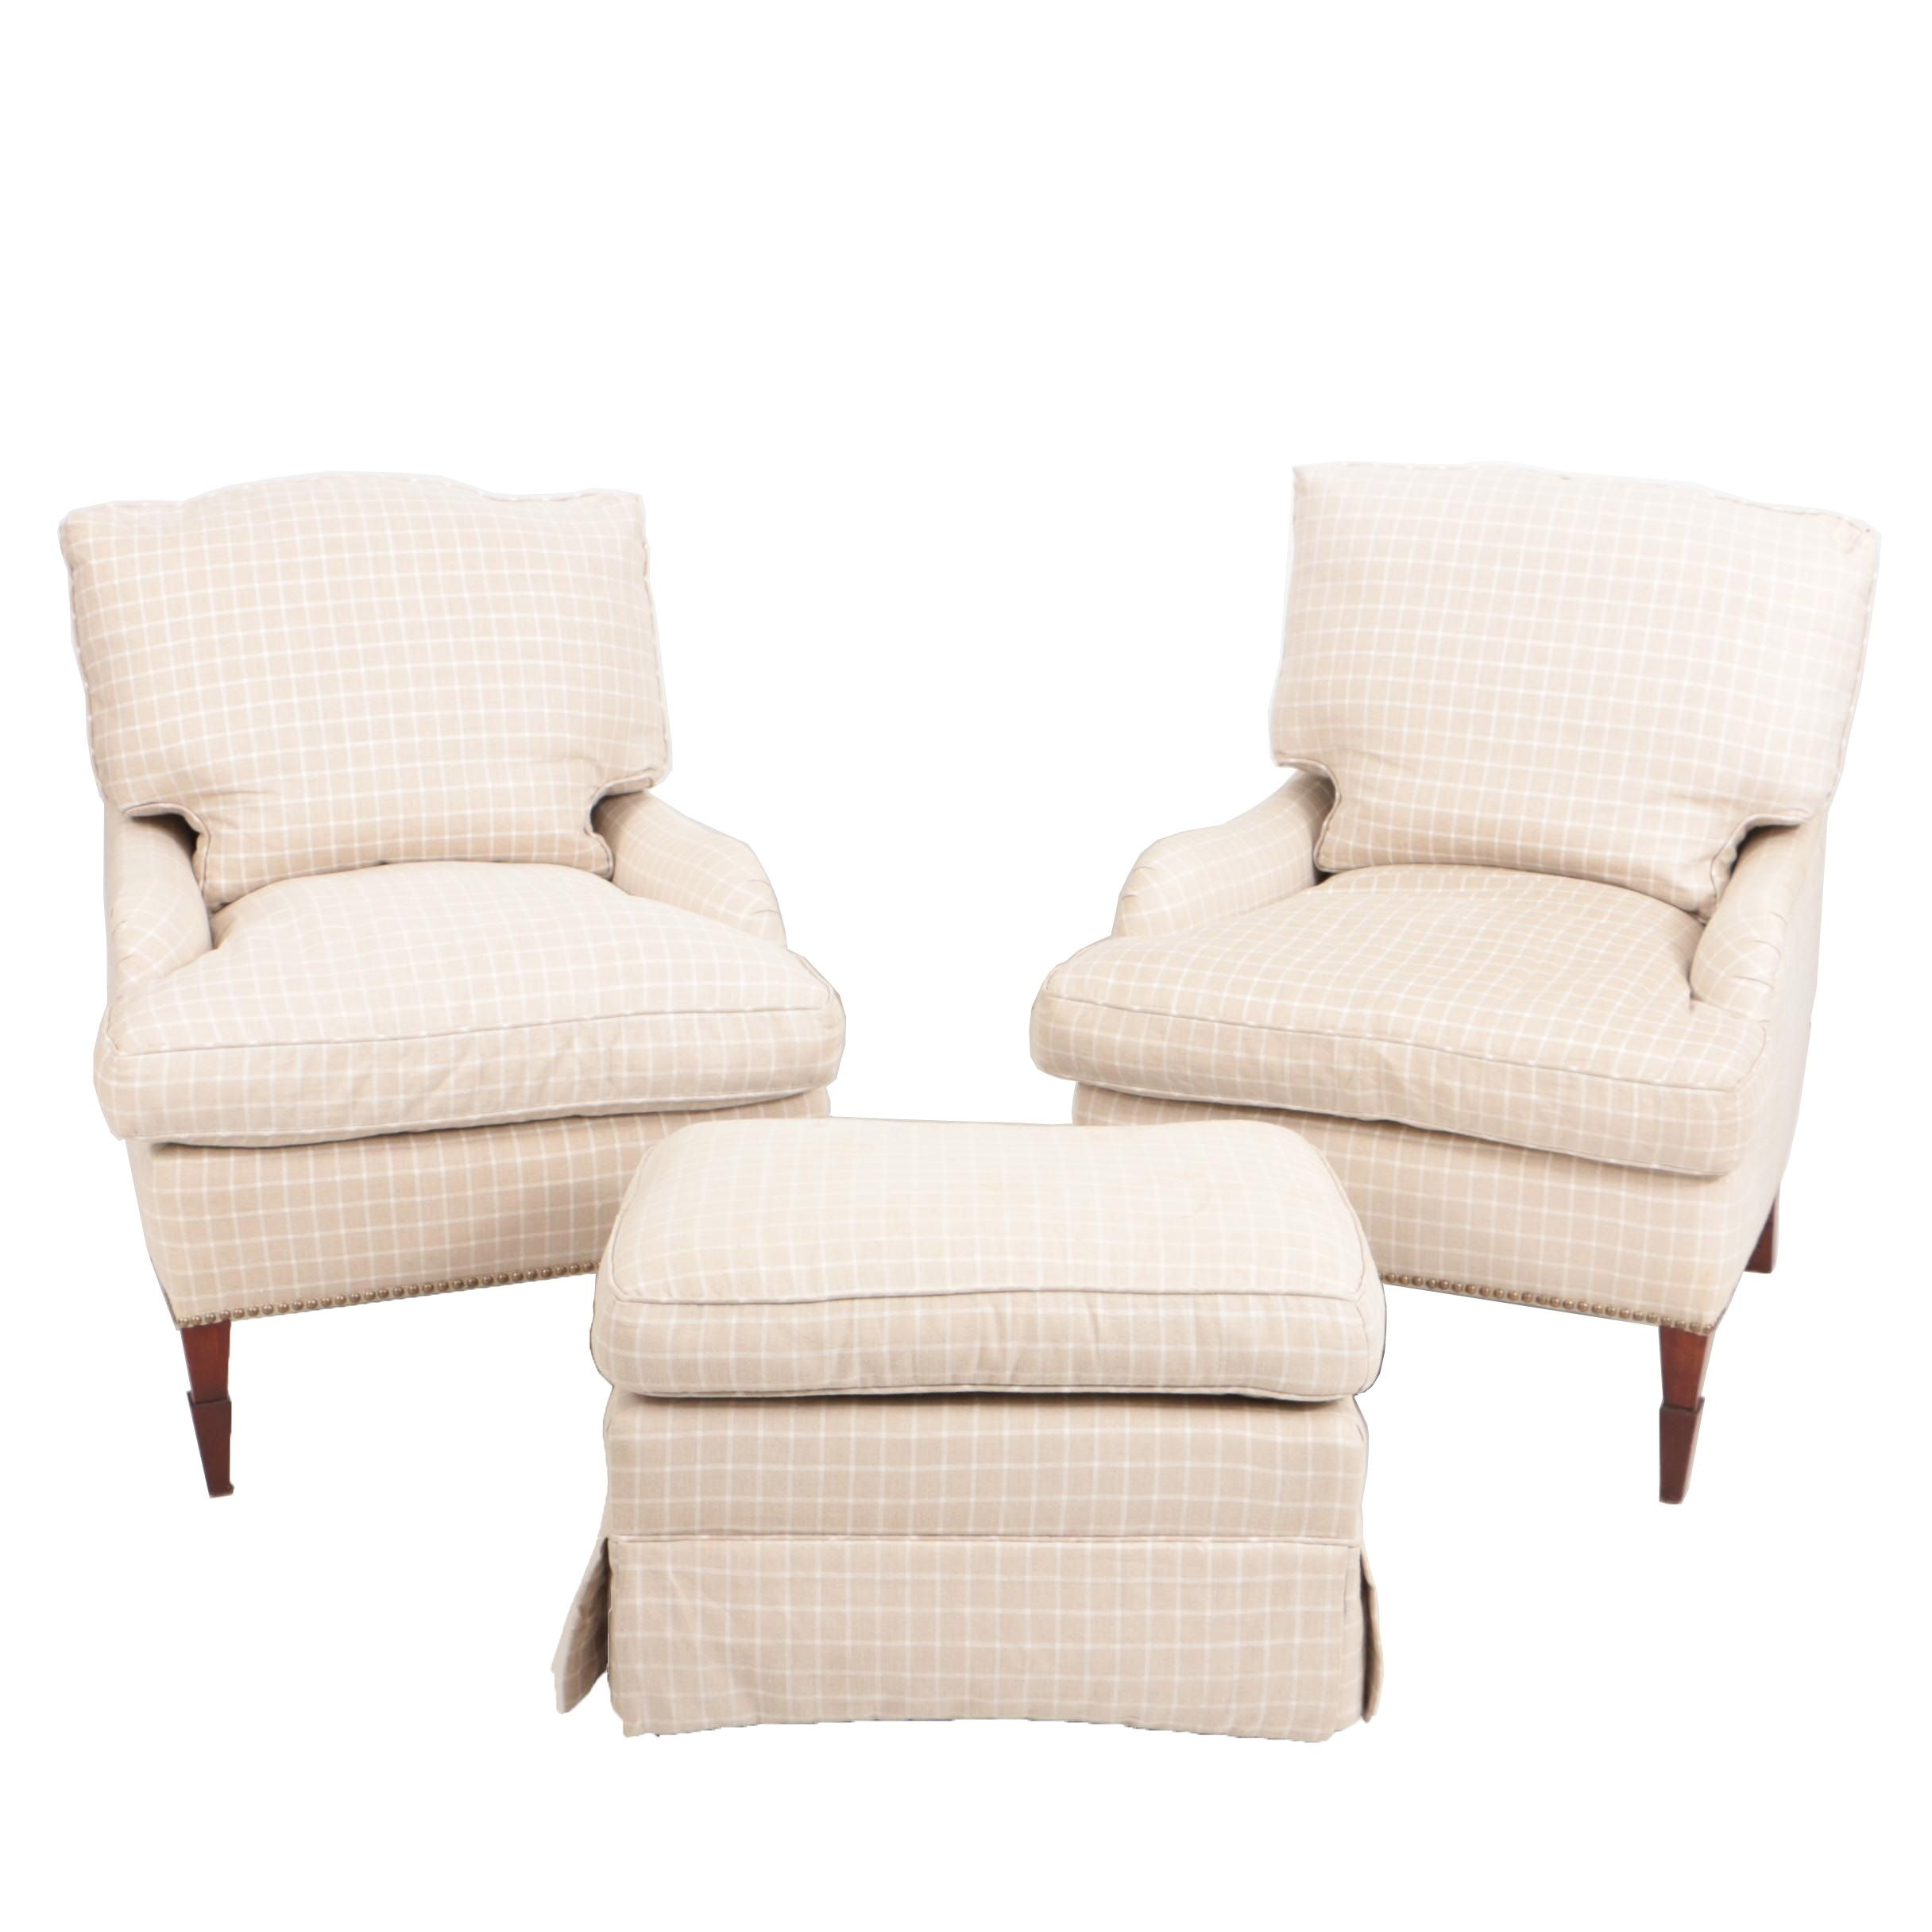 Custom-Upholstered Easy Chairs with Ottoman